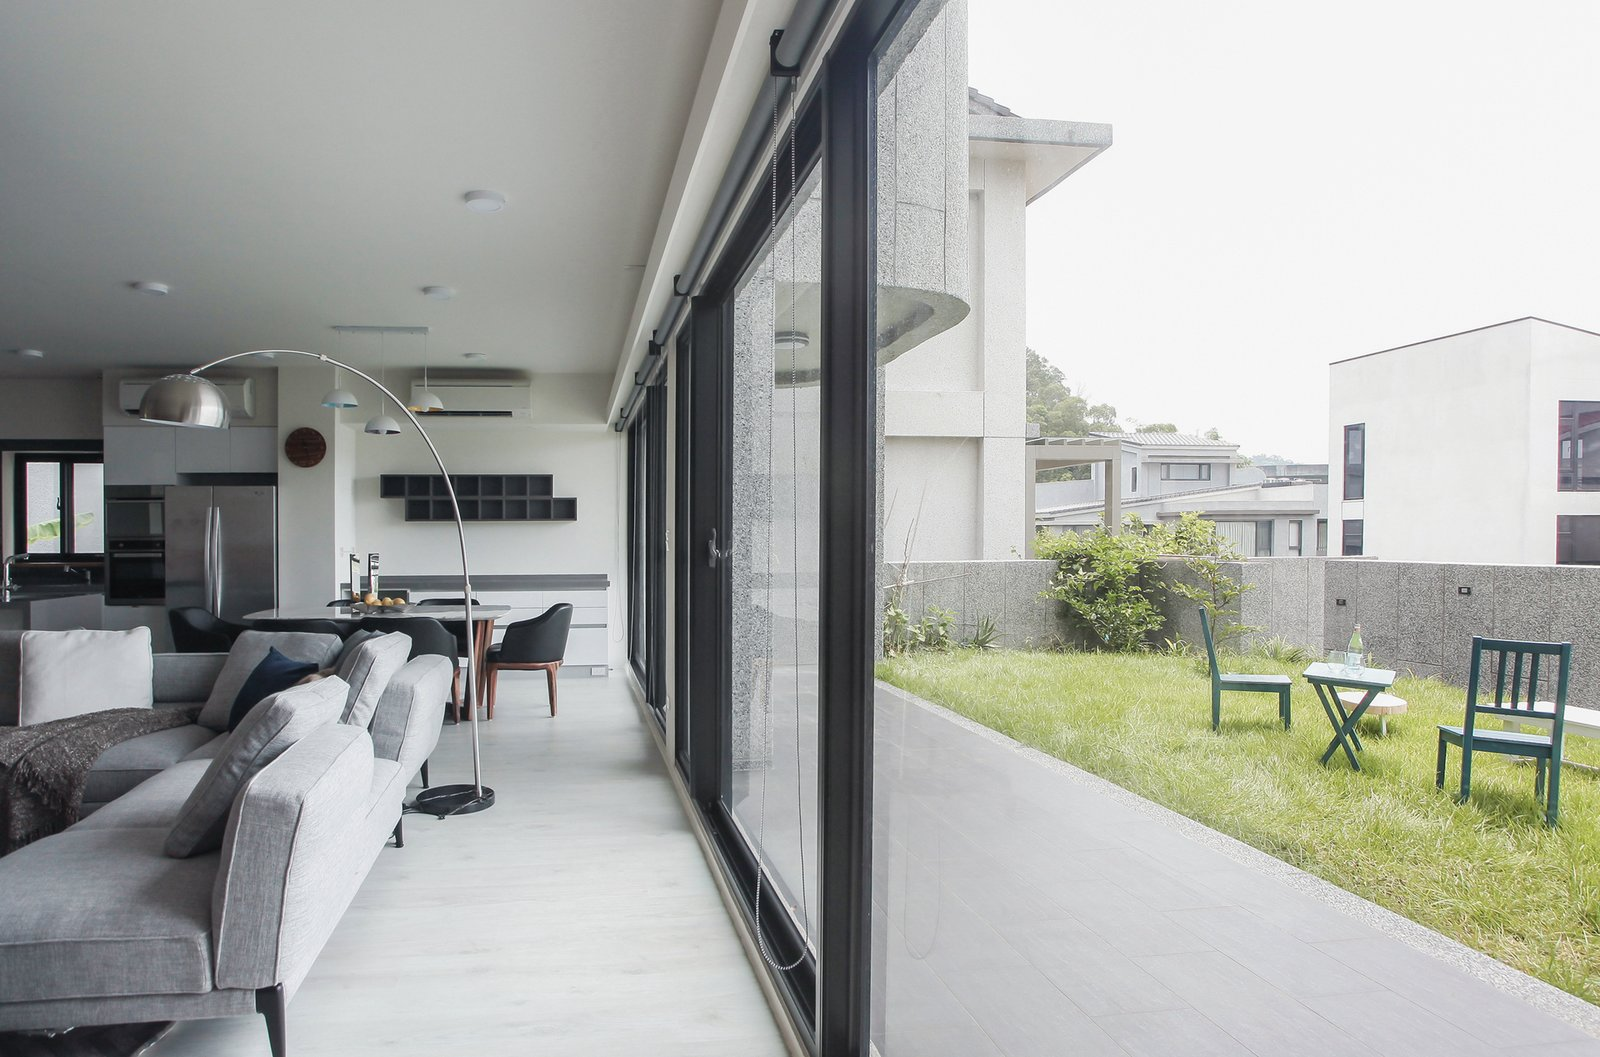 Windows and Sliding Window Type  Photo 5 of 15 in A Serpentine Wall in This Taiwanese Home Divides Public and Private Space